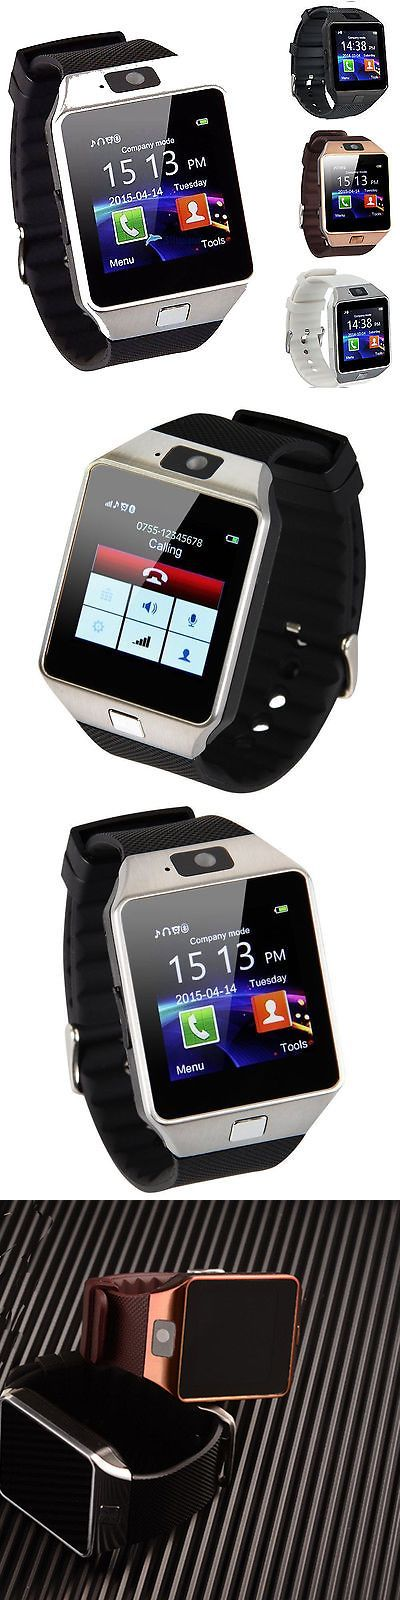 Smart Watches: Cawono Dz09 U80 A1 Bluetooth Smart Watch For Ios Iphone Samsung Lg Android Phone -> BUY IT NOW ONLY: $9.99 on eBay!